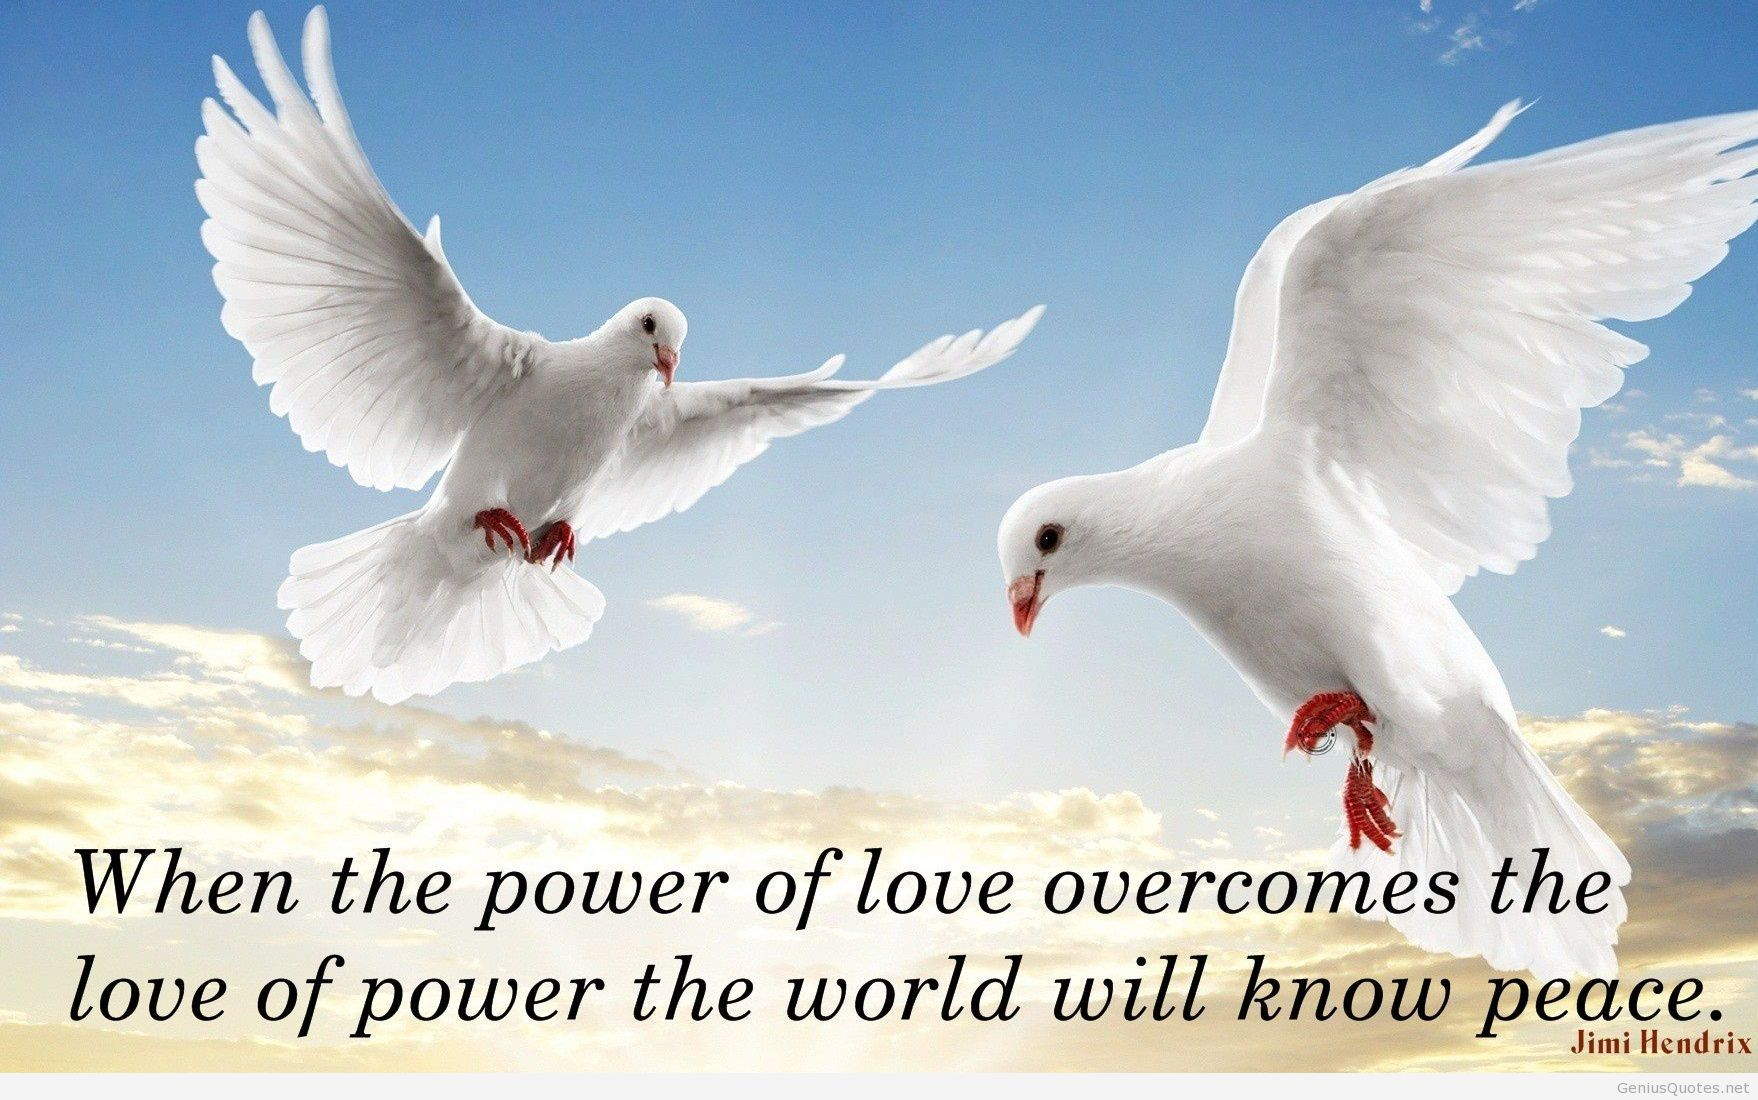 PEACE IS THE HIGHEST FORM DISCLPINE QUOTE Of Power